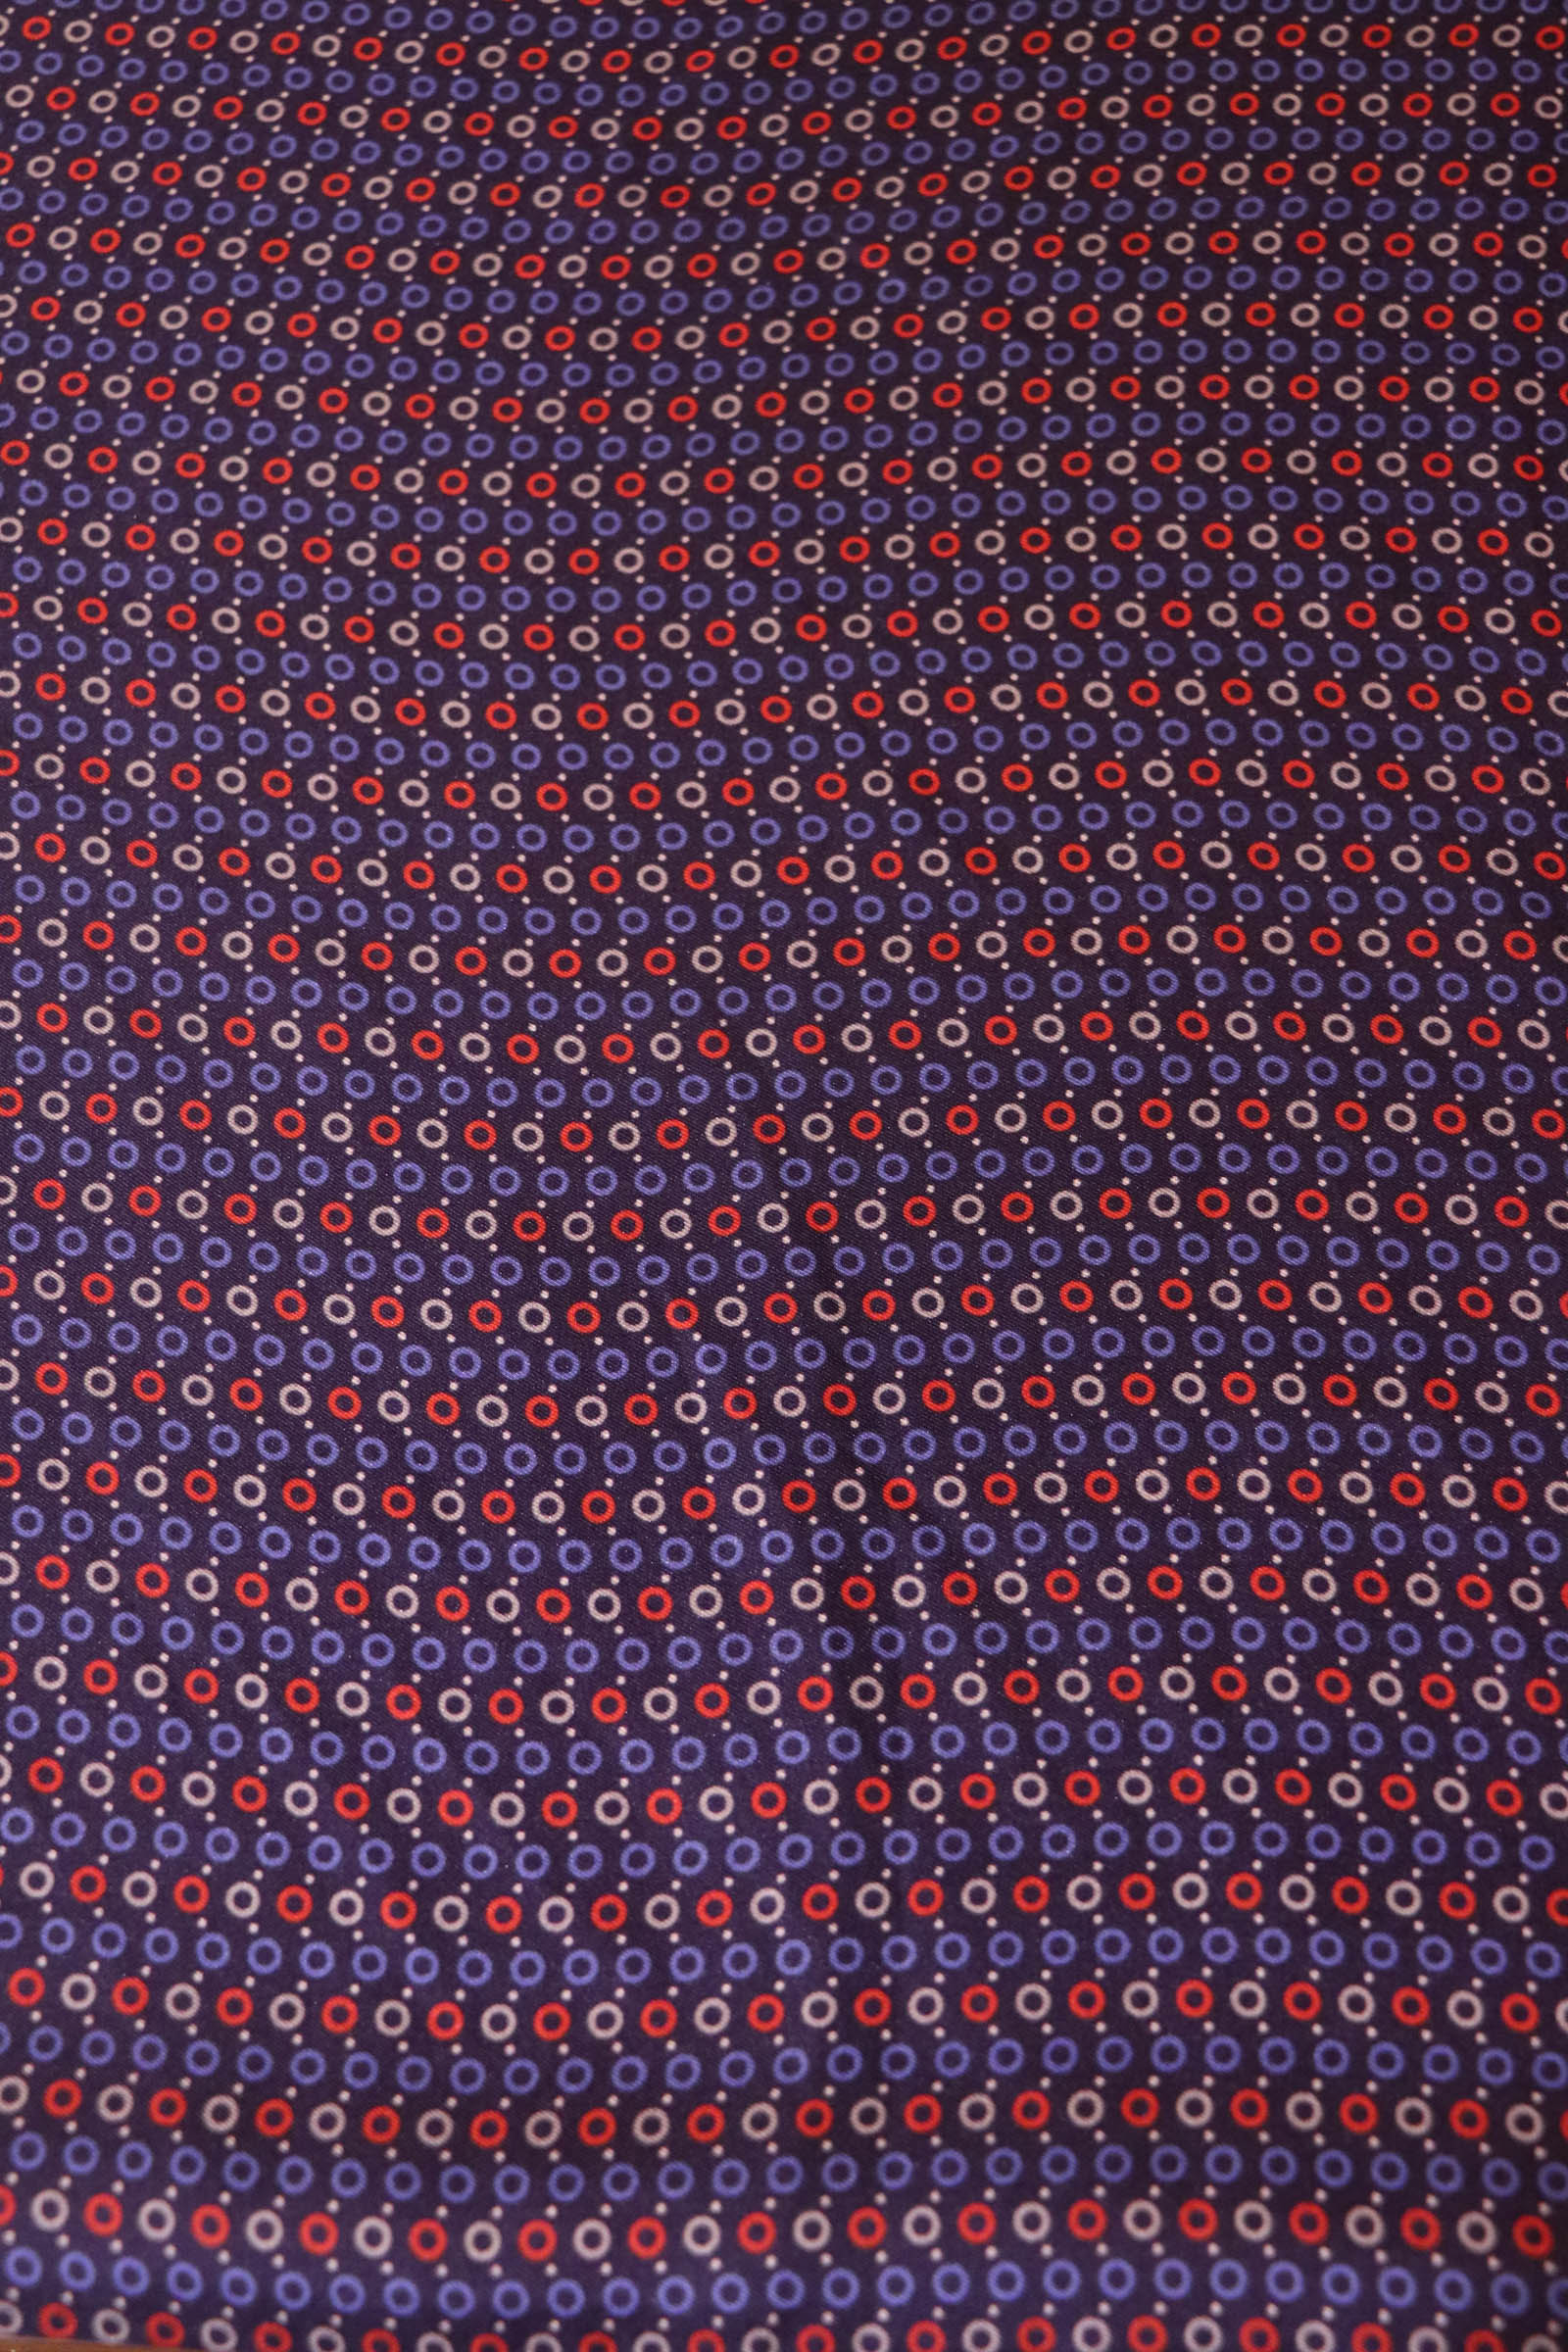 Exquisite Pure Printed Twill Silk Fabric- Width-44-Inches